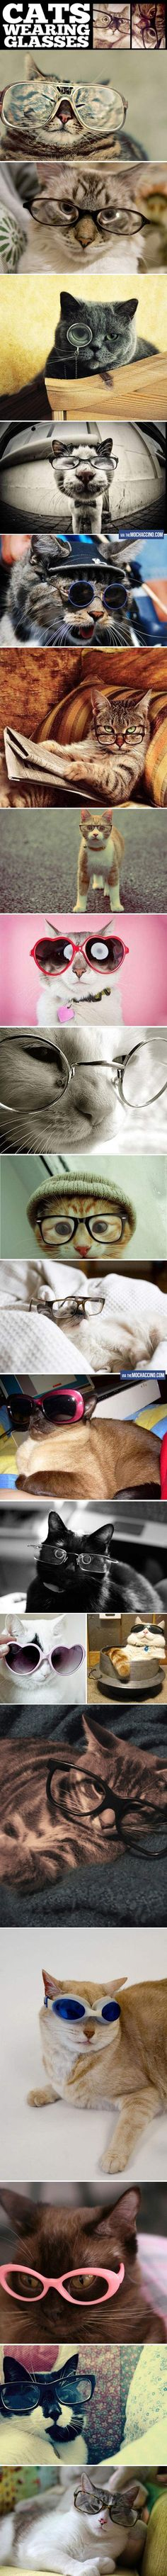 Cats wearing glasses. << Kitties are just too, too cute! --- Want a cat in your life? Come see all the adoptable #cats at the Humane Society of Fremont County! We're located in Canon City, Colorado. www.canoncityhumanesociety.org